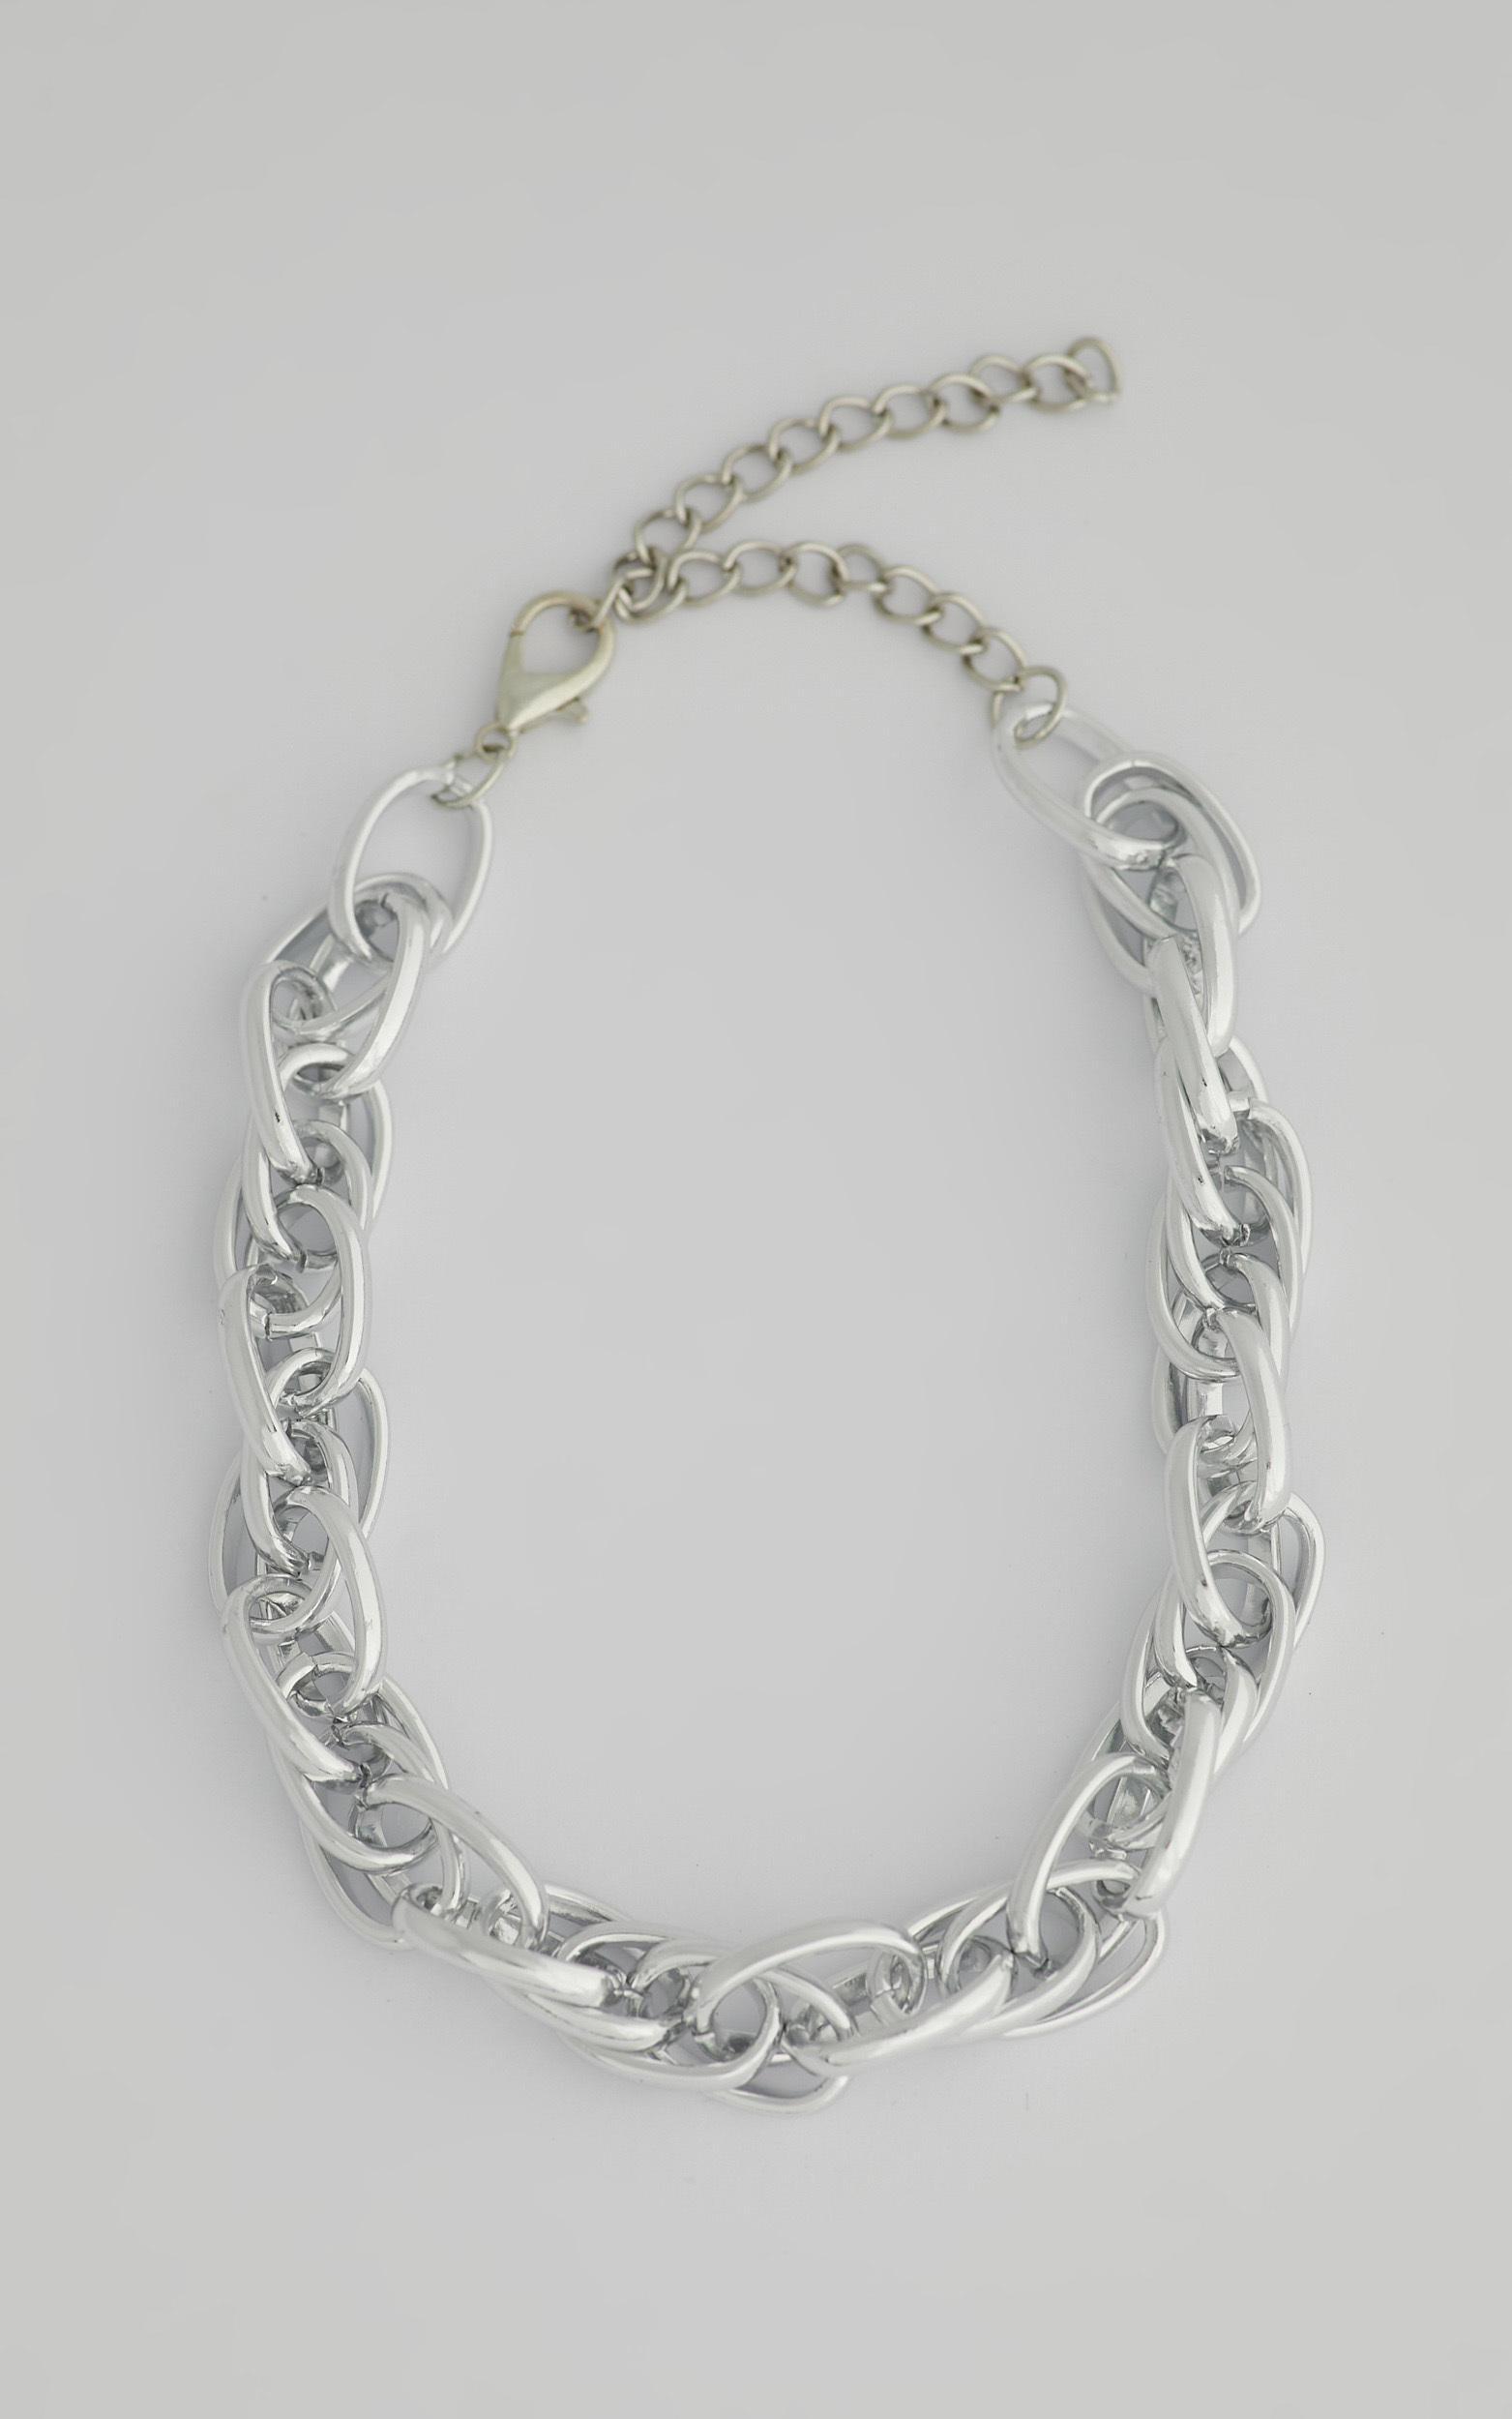 Kittie Necklace in Silver - NoSize, SLV1, hi-res image number null